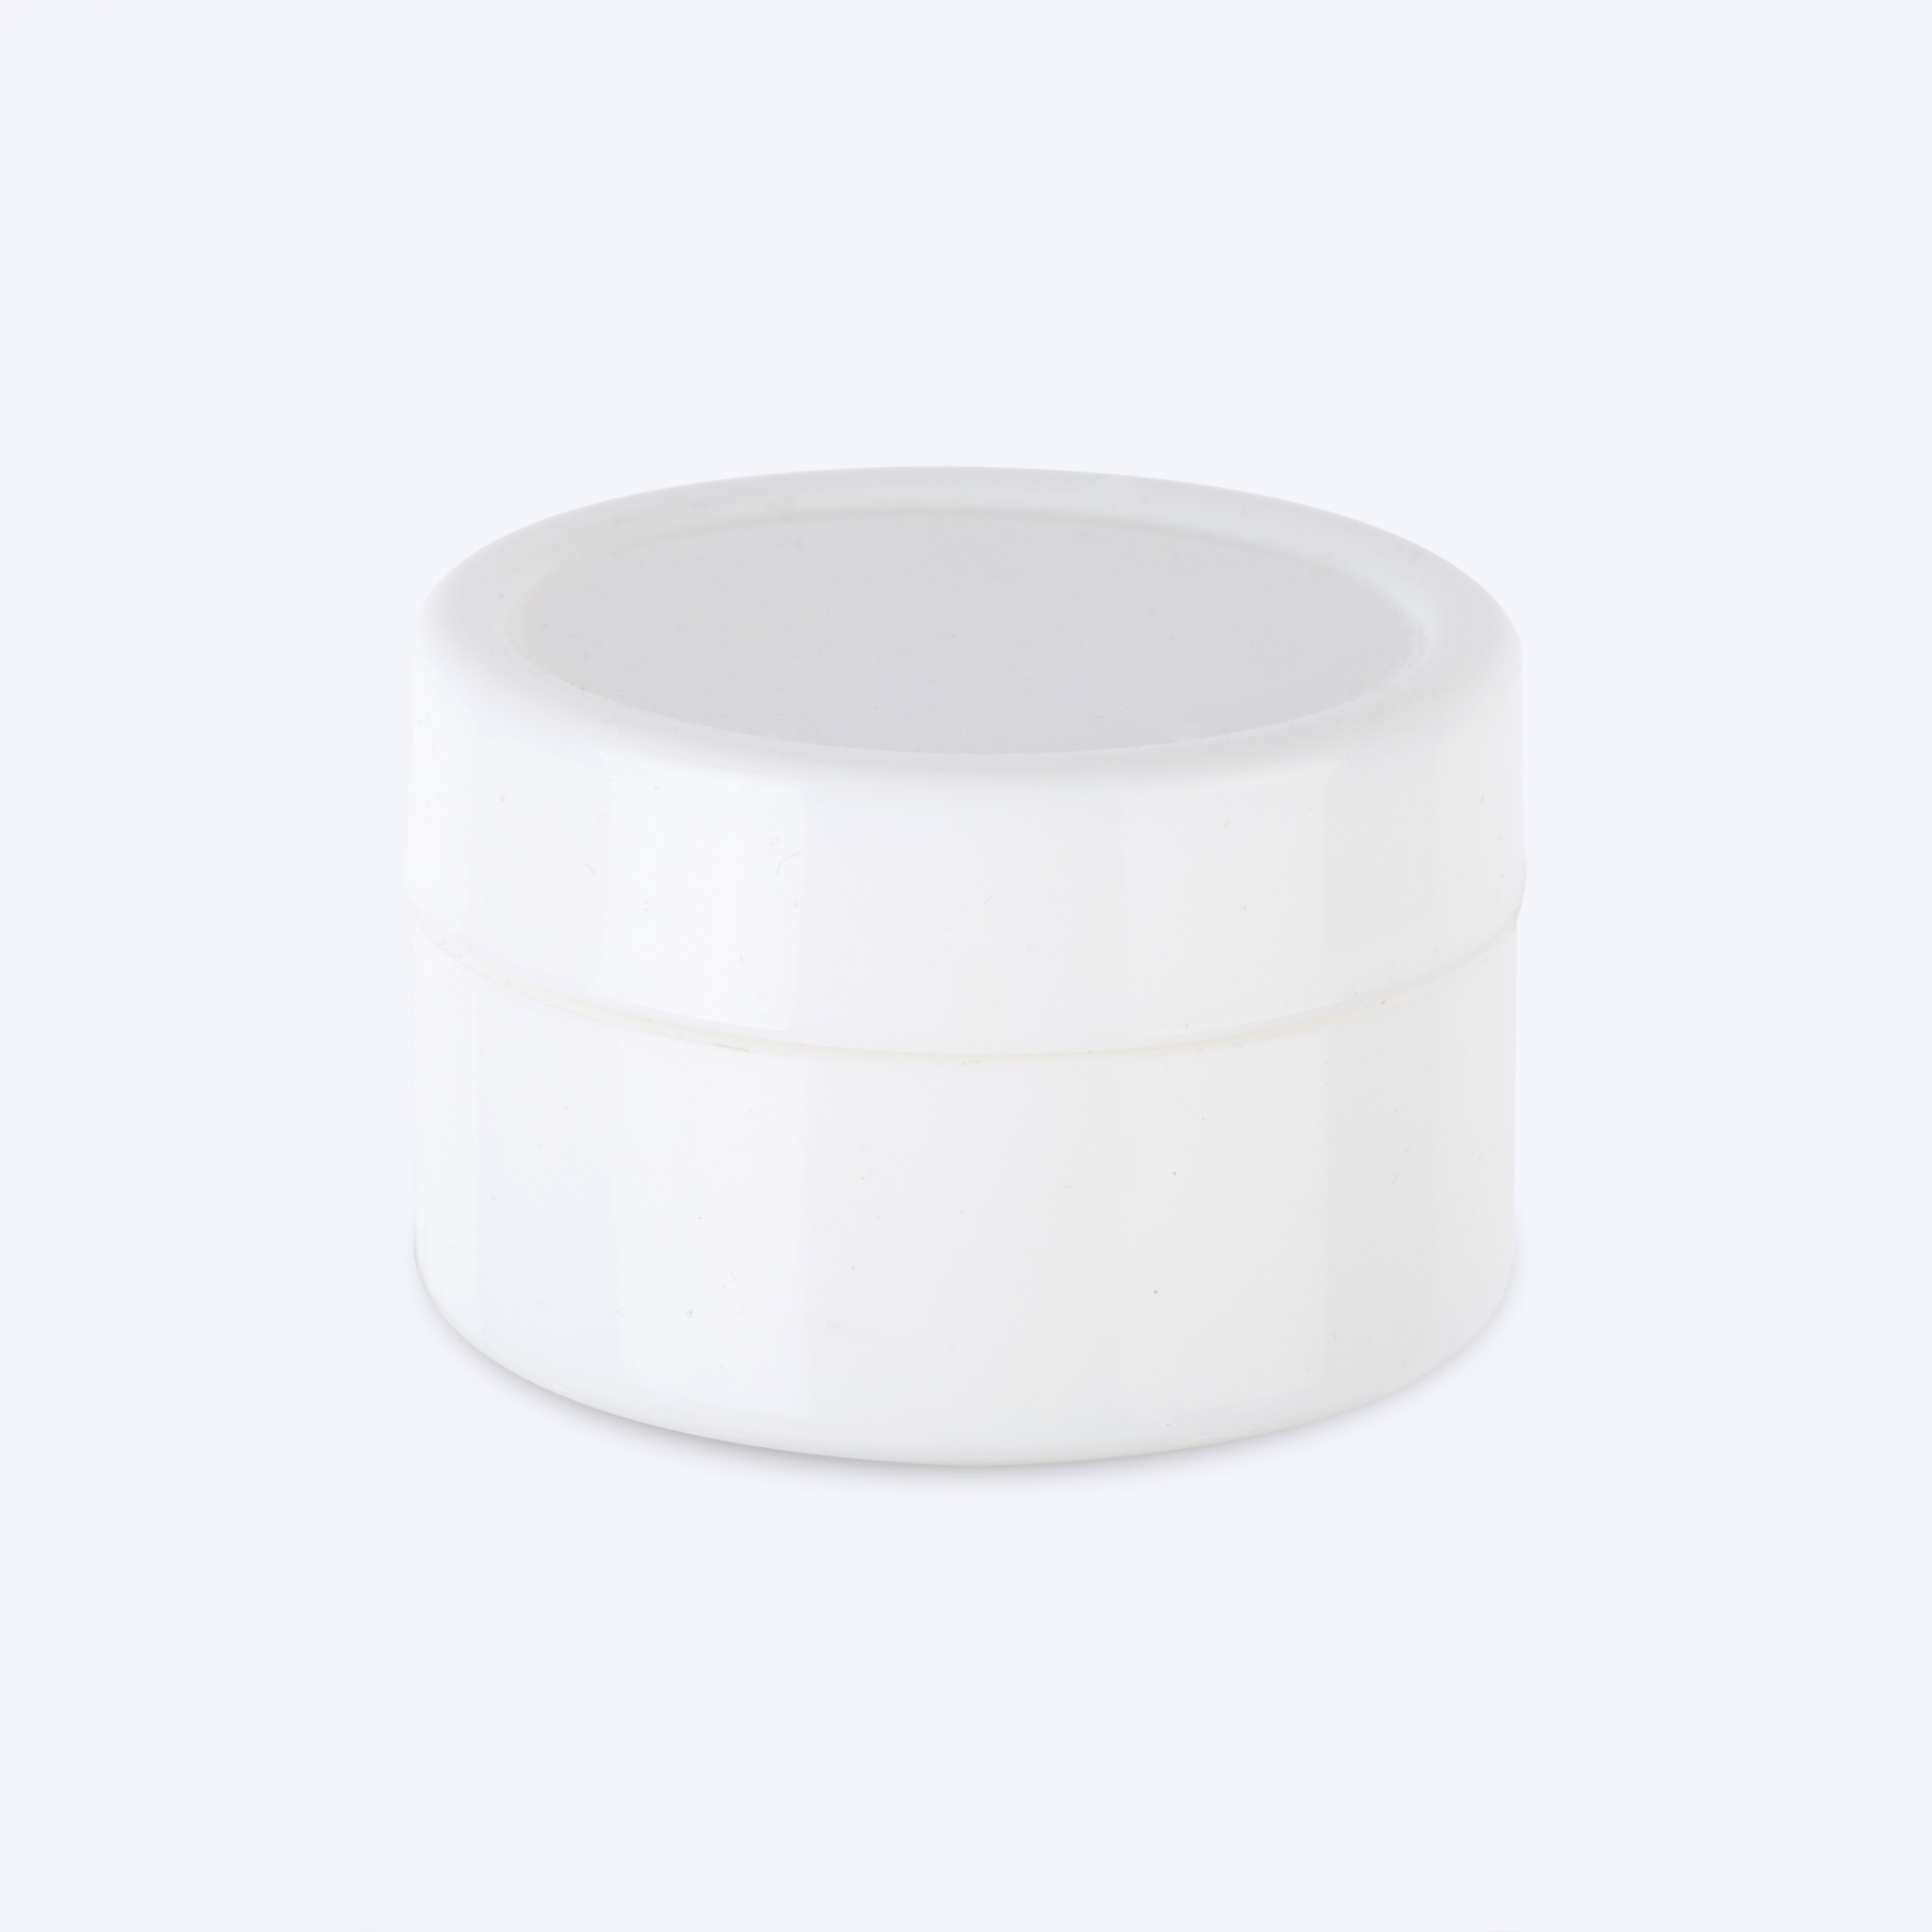 7 ml - Silicone Concentrate Containers